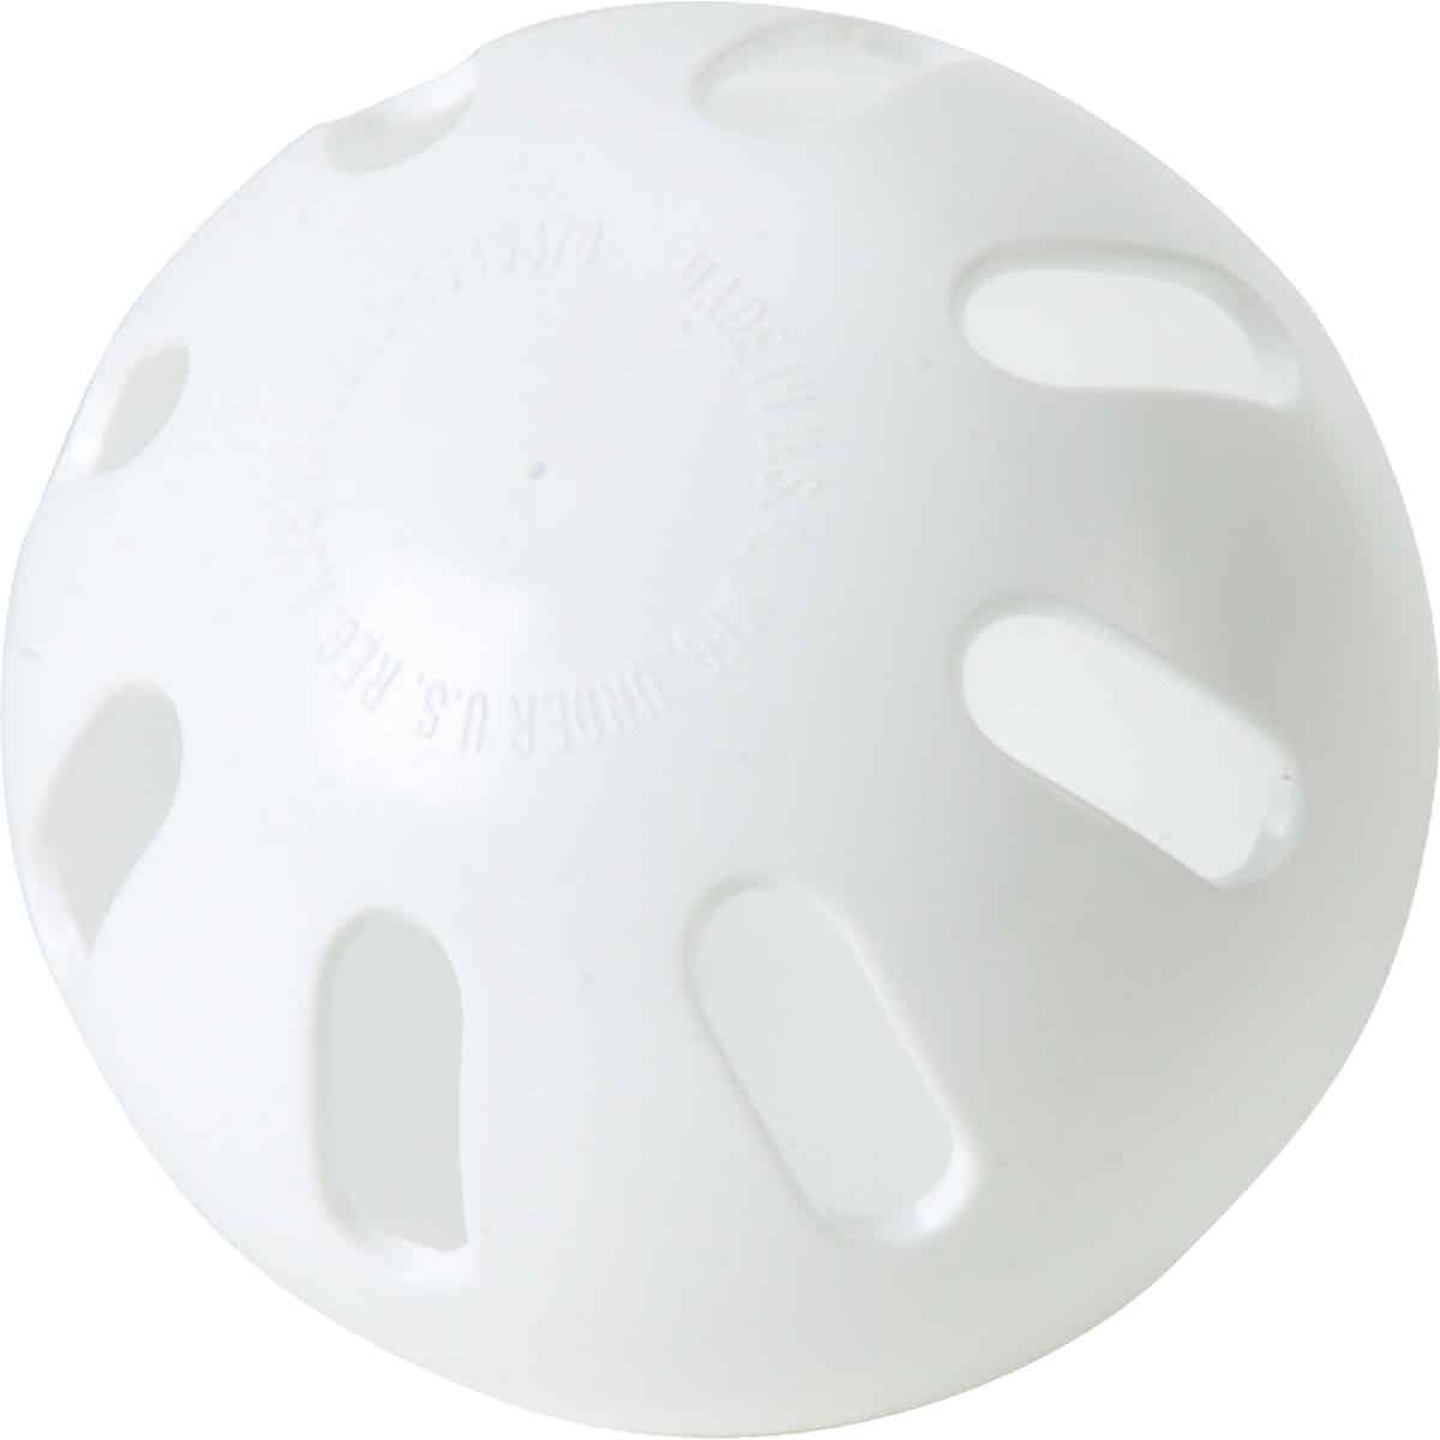 Regulation Size White Wiffle Ball Image 1